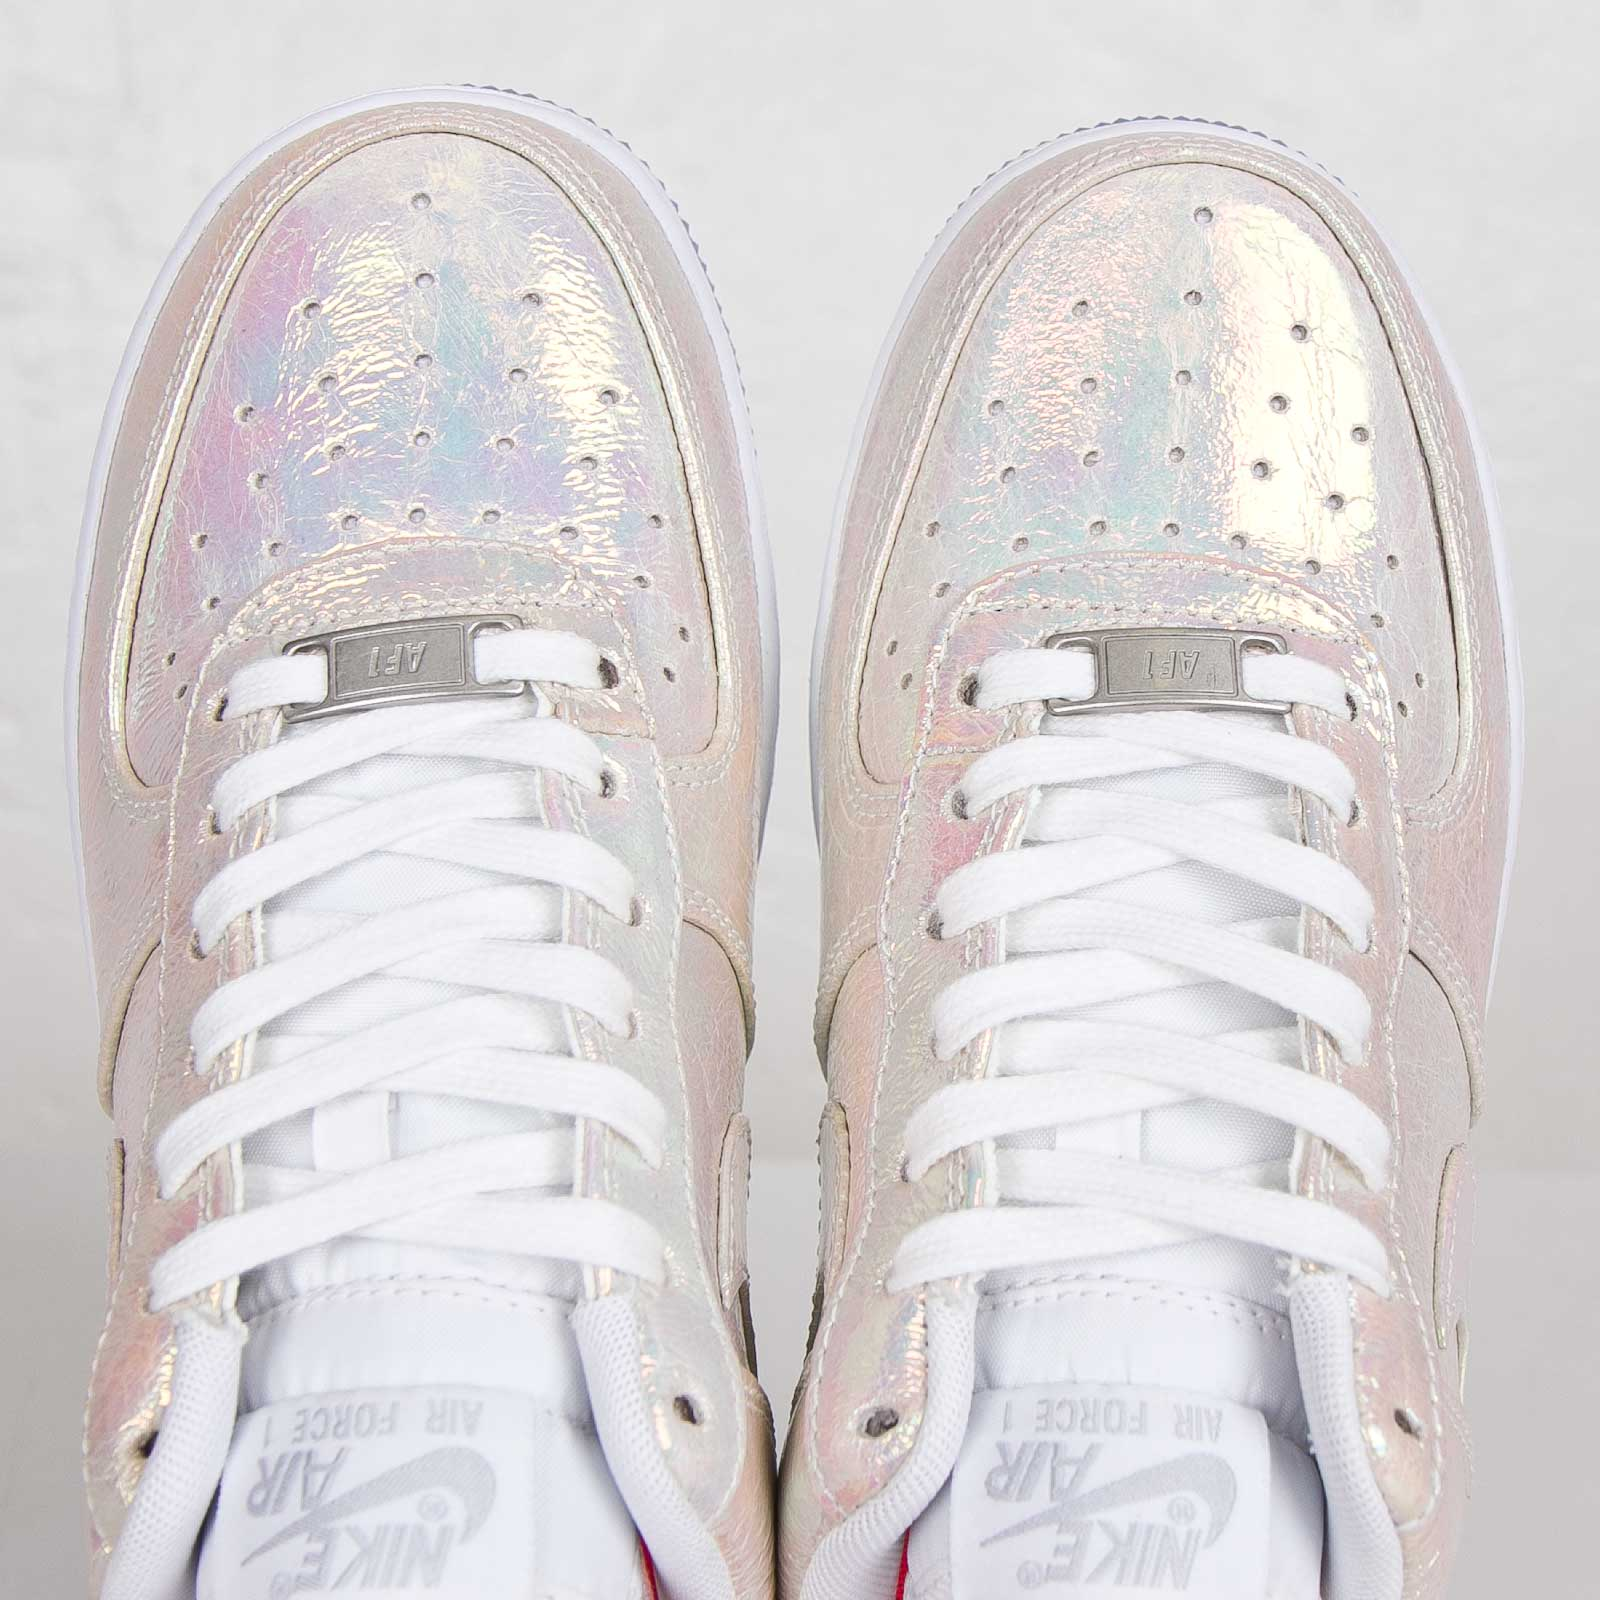 cheap for discount 6517e 48eb5 Nike Wmns Air Force 1 07 Premium QS - 704517-100 - Sneakersnstuff    sneakers   streetwear online since 1999